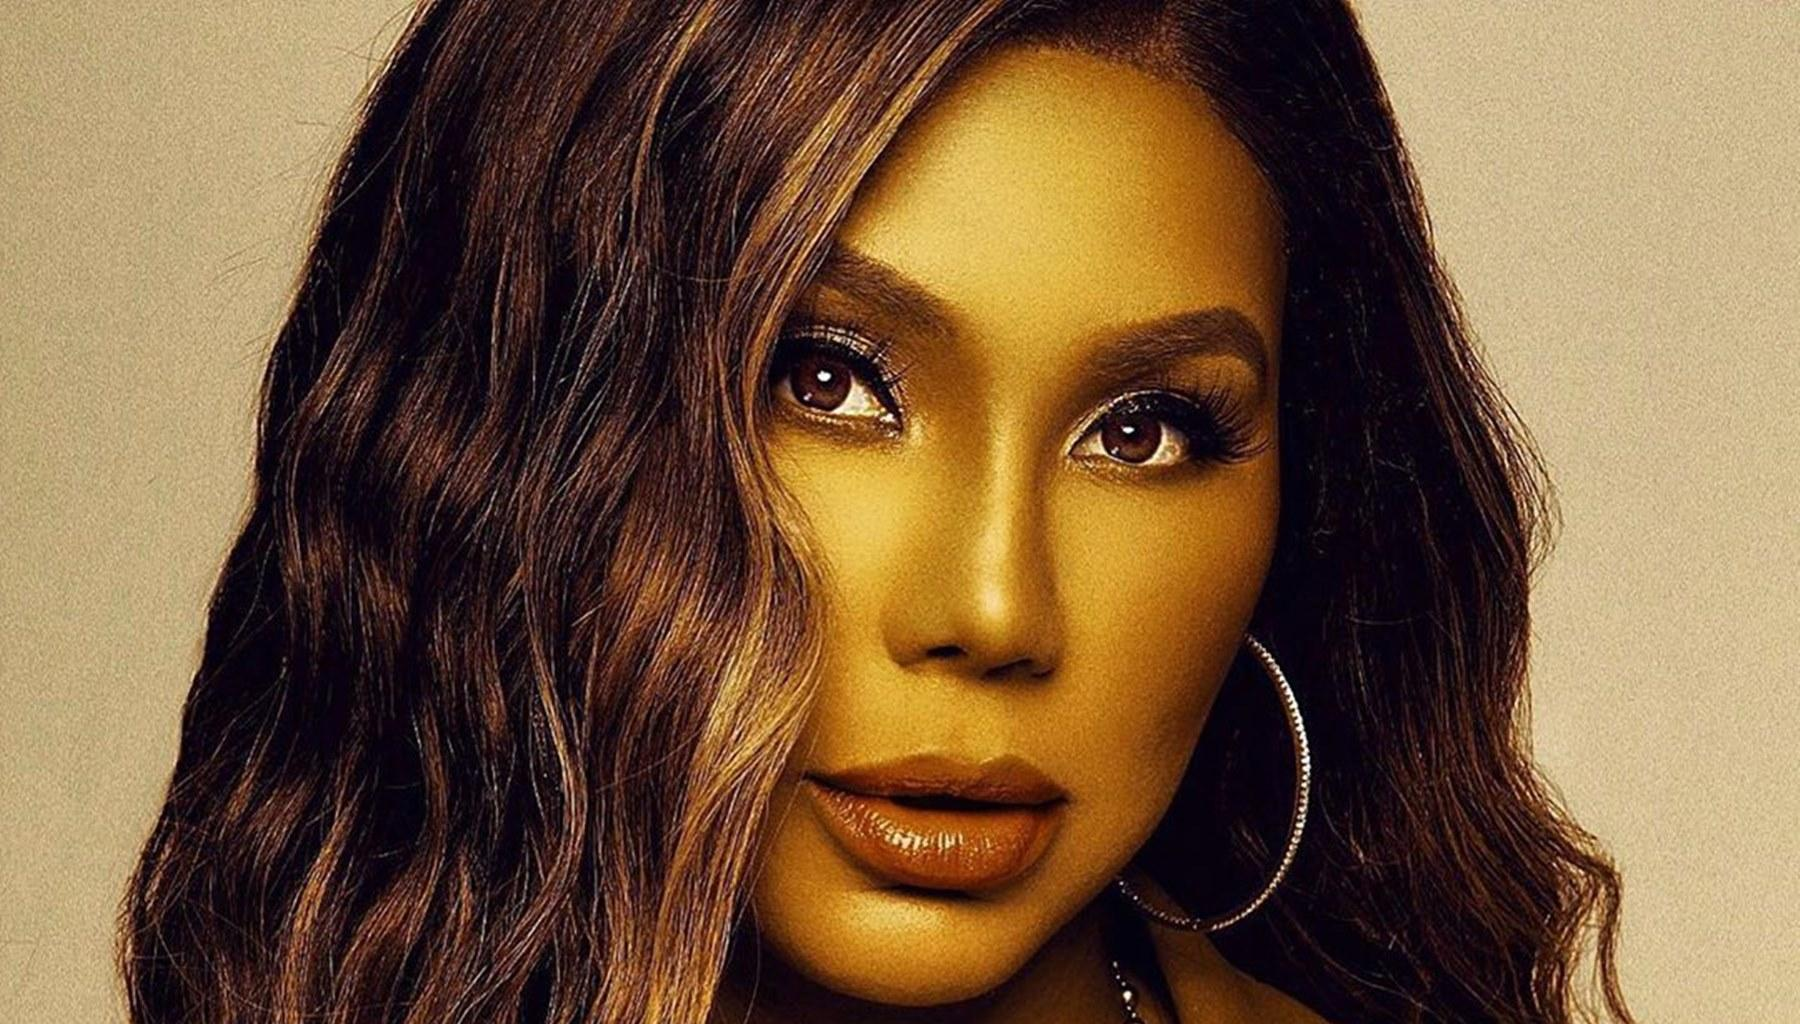 Tamar Braxton Returns To Instagram With Eye-Popping Photo And Big Announcement And Ashanti Has This Reaction